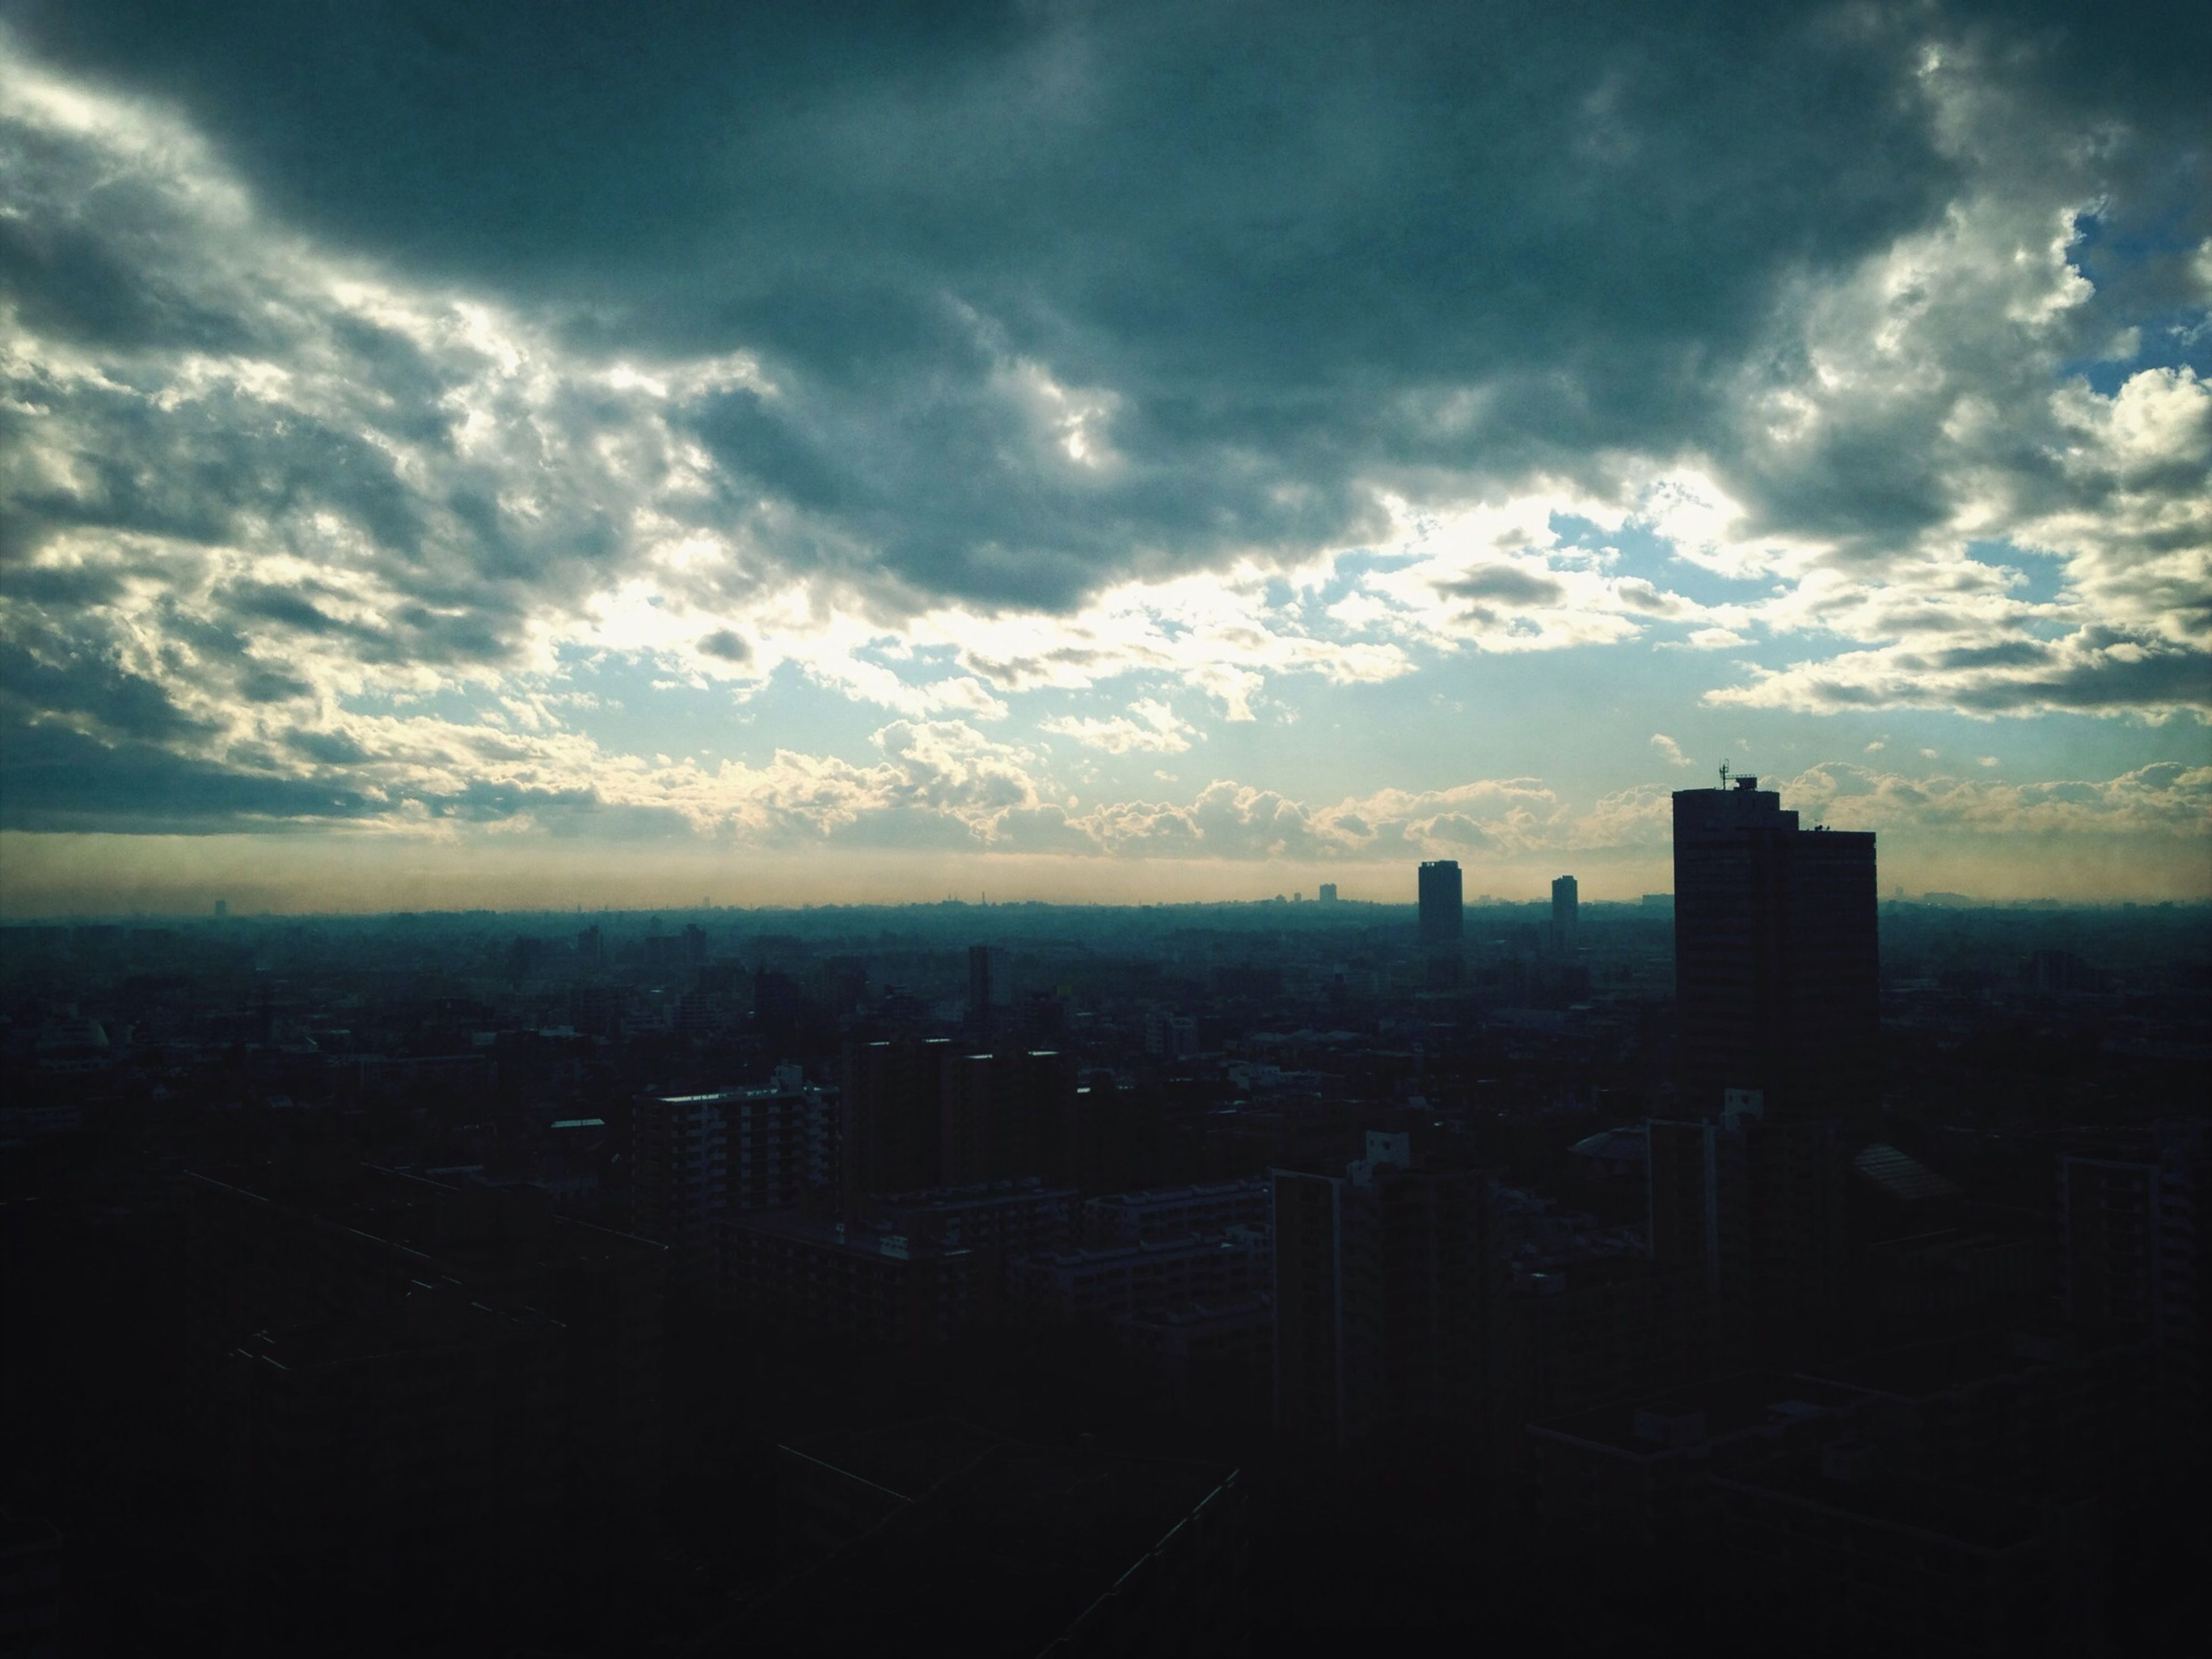 city, cityscape, building exterior, architecture, sky, built structure, cloud - sky, sunset, skyscraper, cloudy, crowded, cloud, high angle view, urban skyline, silhouette, modern, residential district, city life, dusk, tower